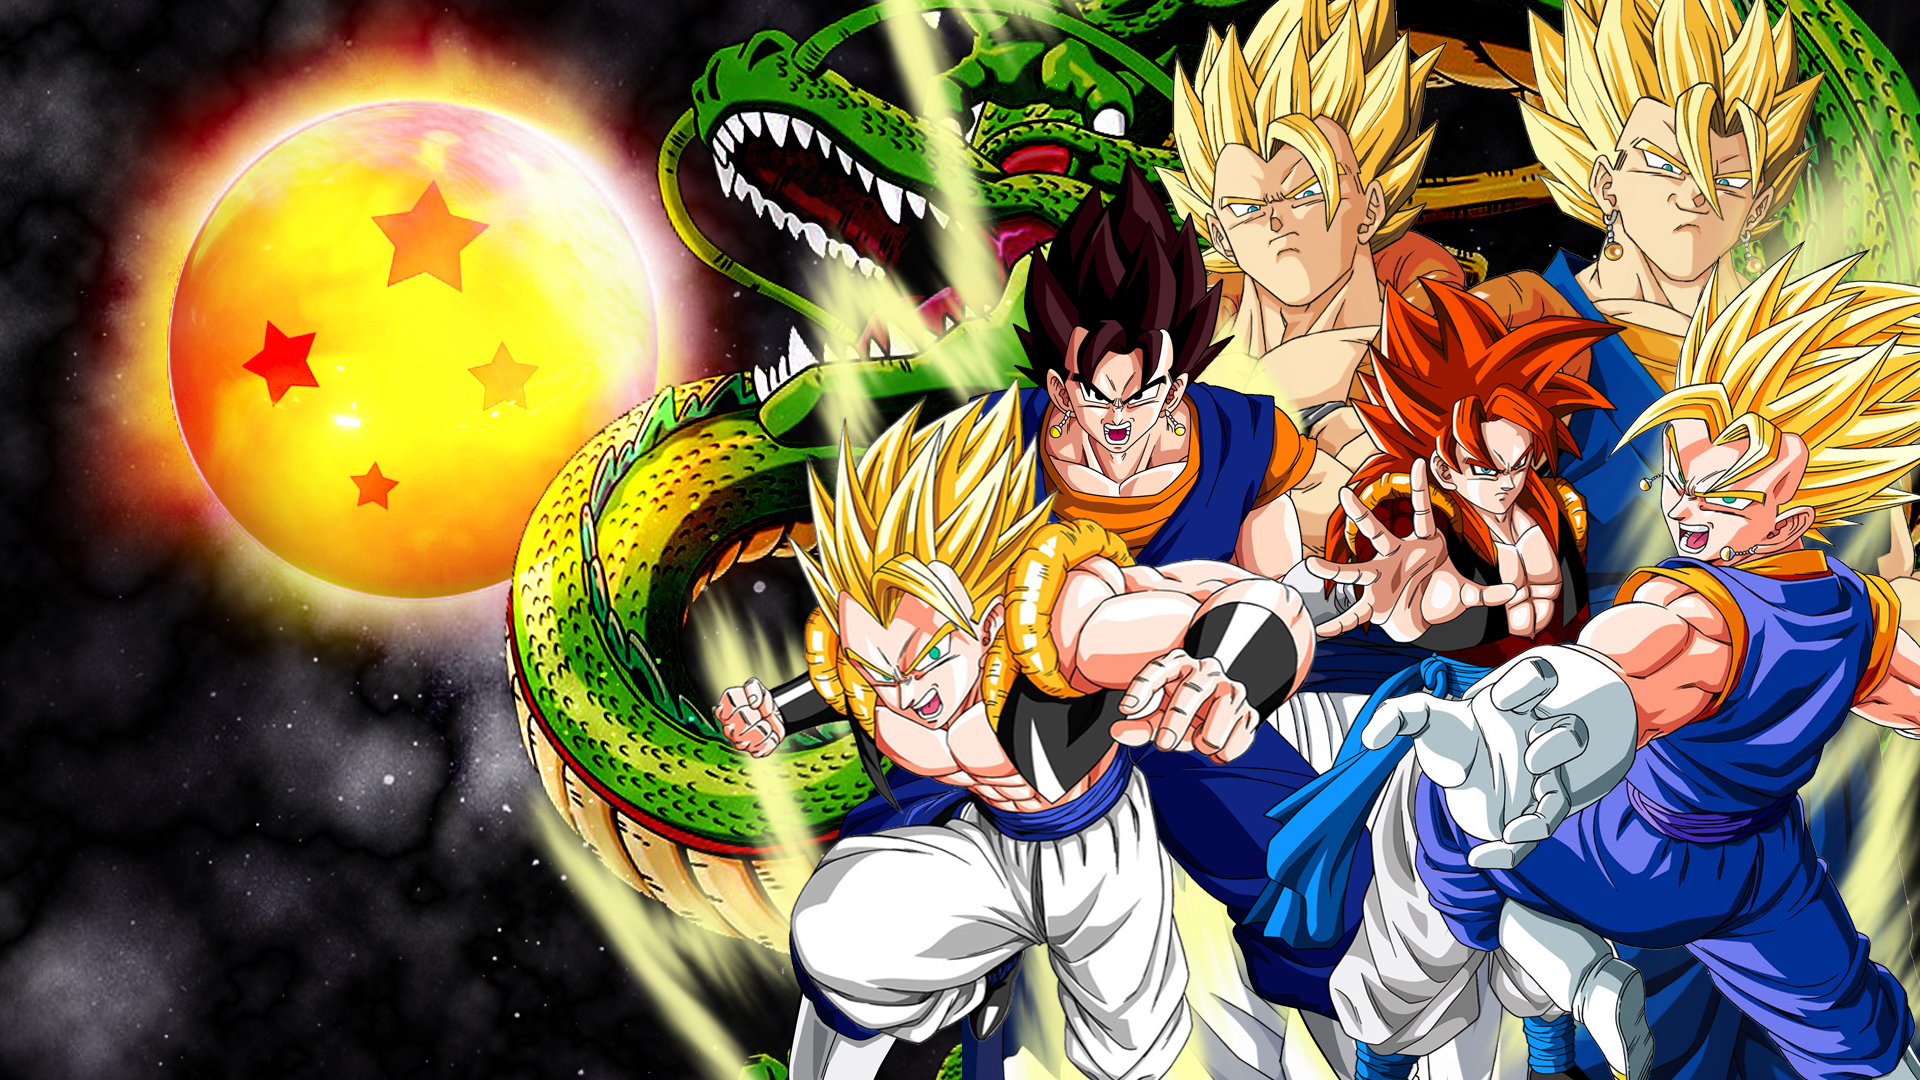 Dragon Ball Z Wallpaper Cartoons